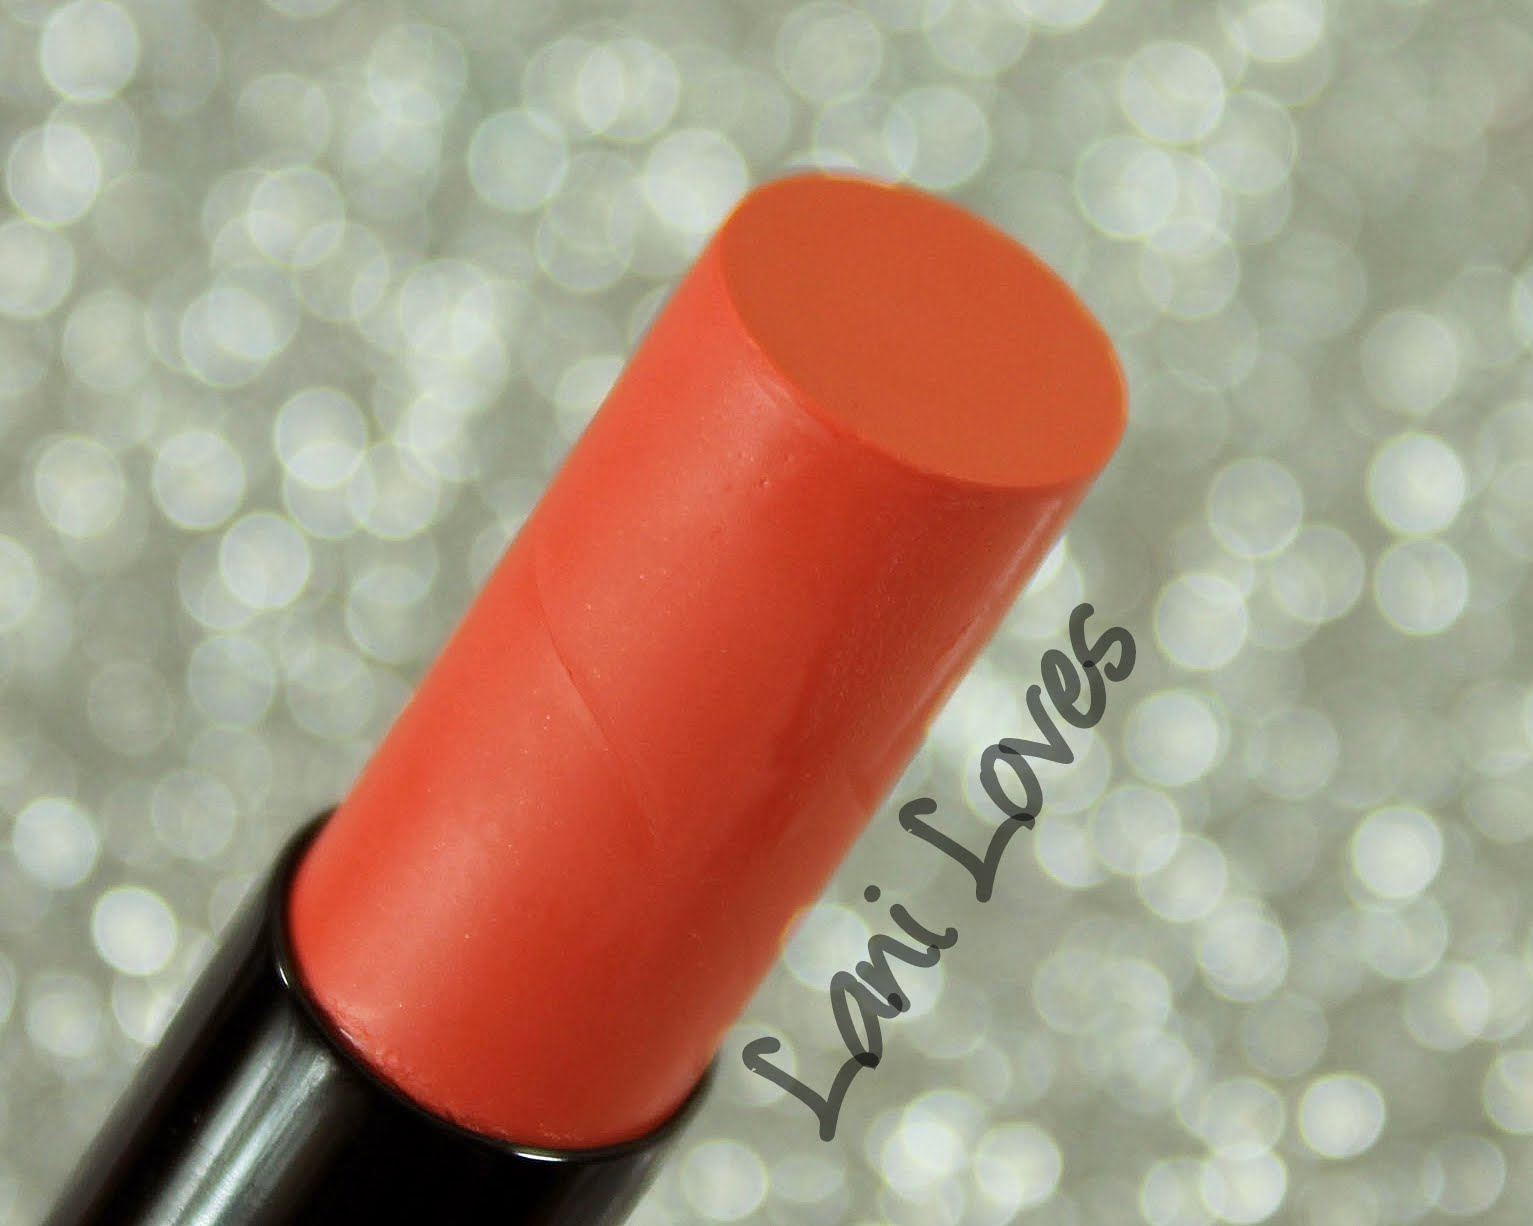 ZA Vibrant Moist Lipstick - OR222 swatches & review